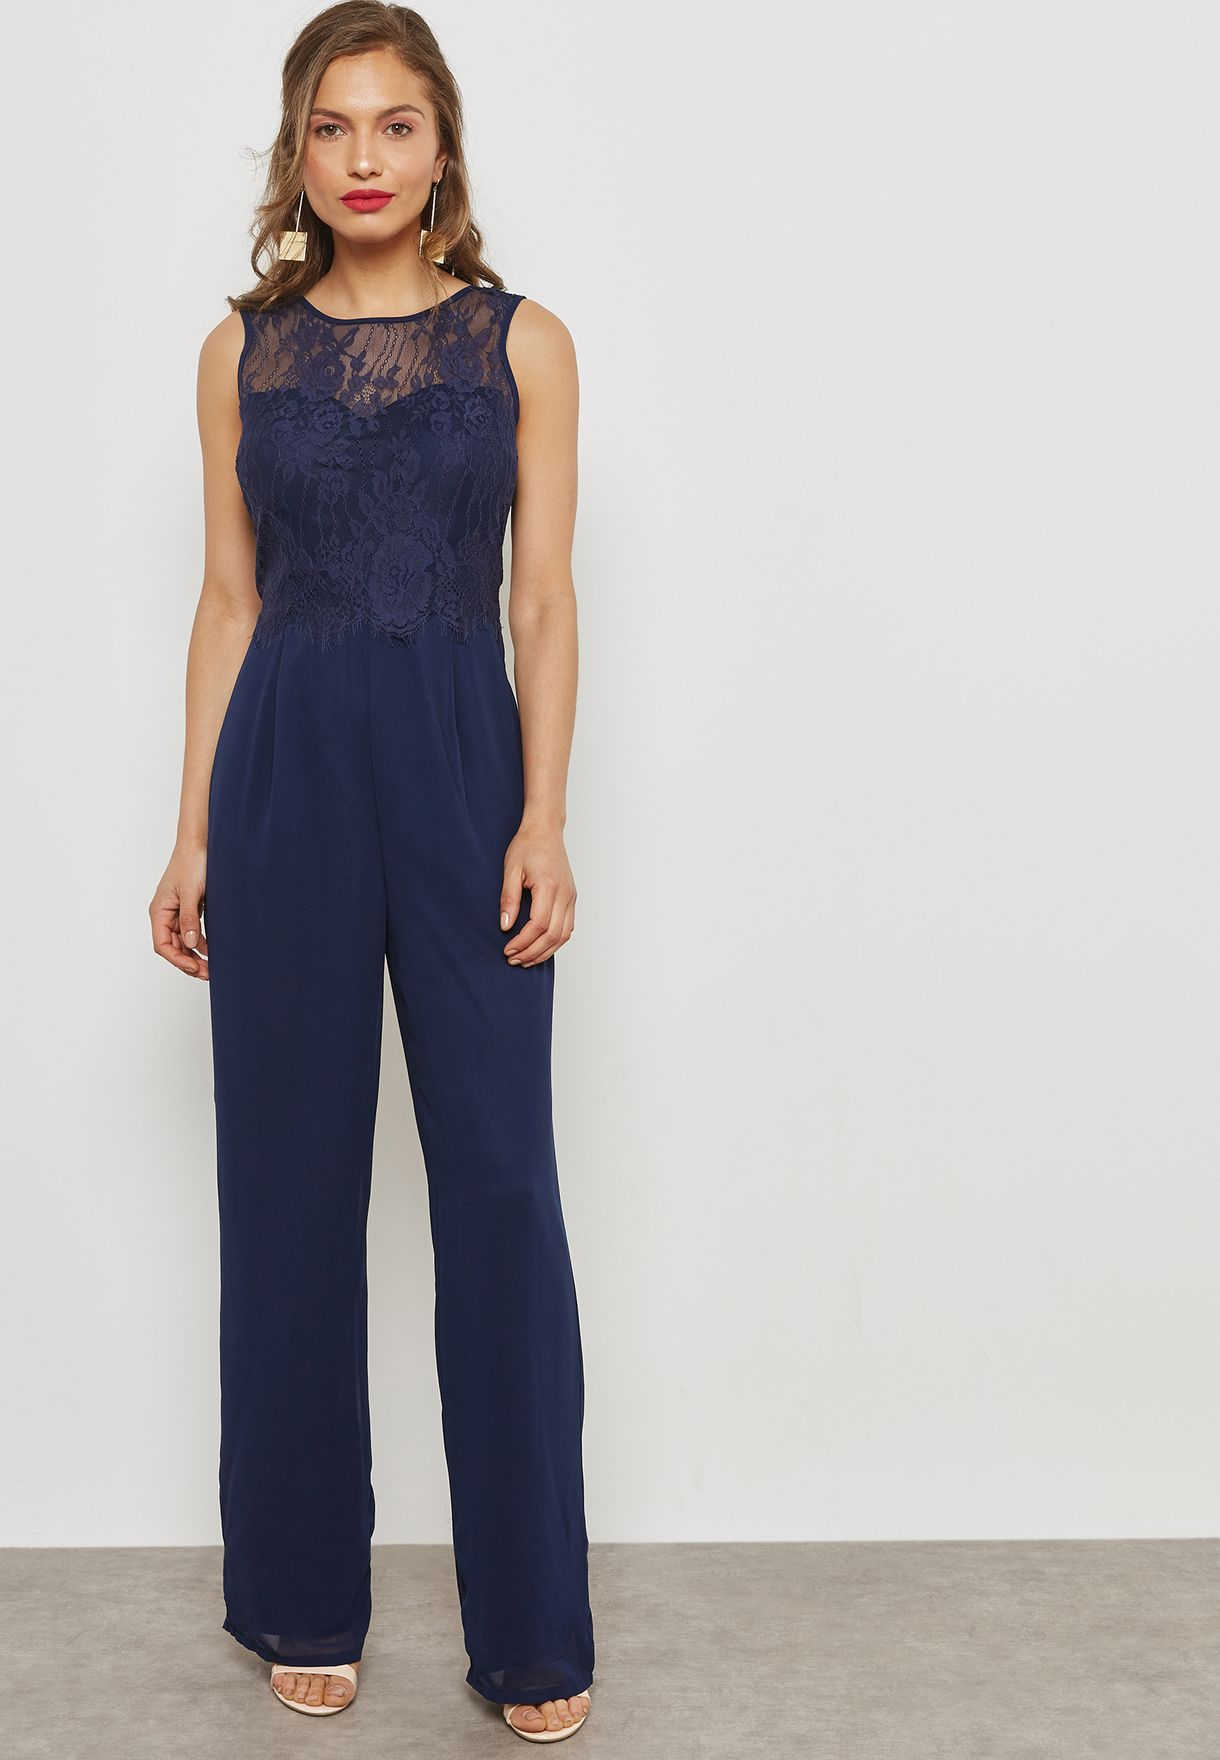 5c57dba94c0 Shop Dorothy Perkins navy Lace Jumpsuit 12618230 for Women in UAE ...